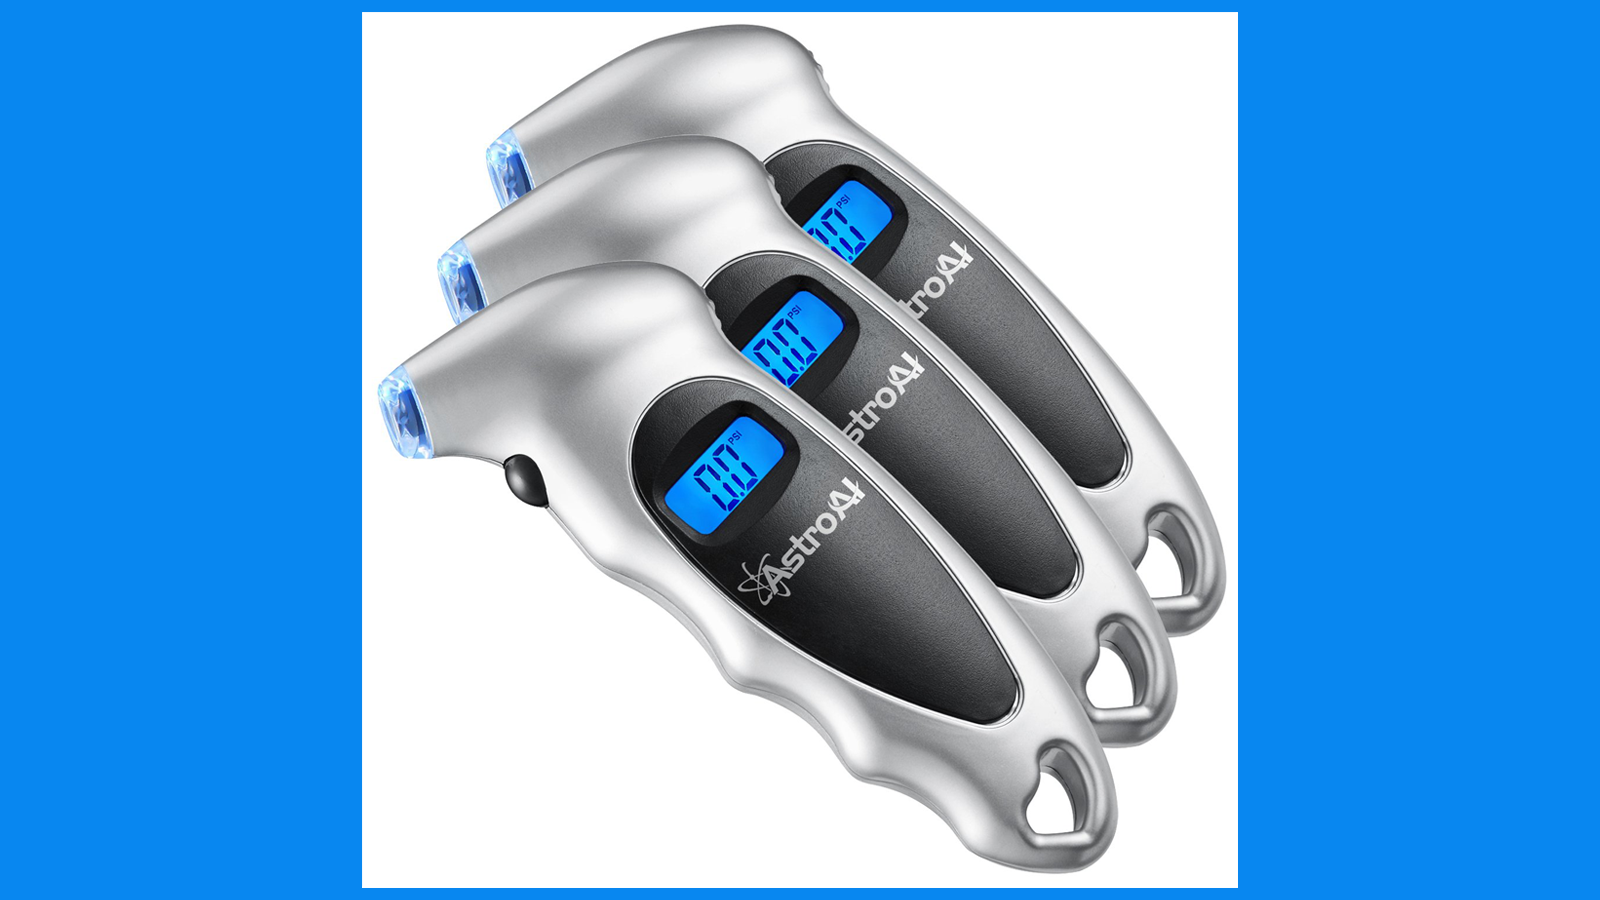 With a Digital Tire Pressure Gauge, You'll Get Accurate Readings Every Time